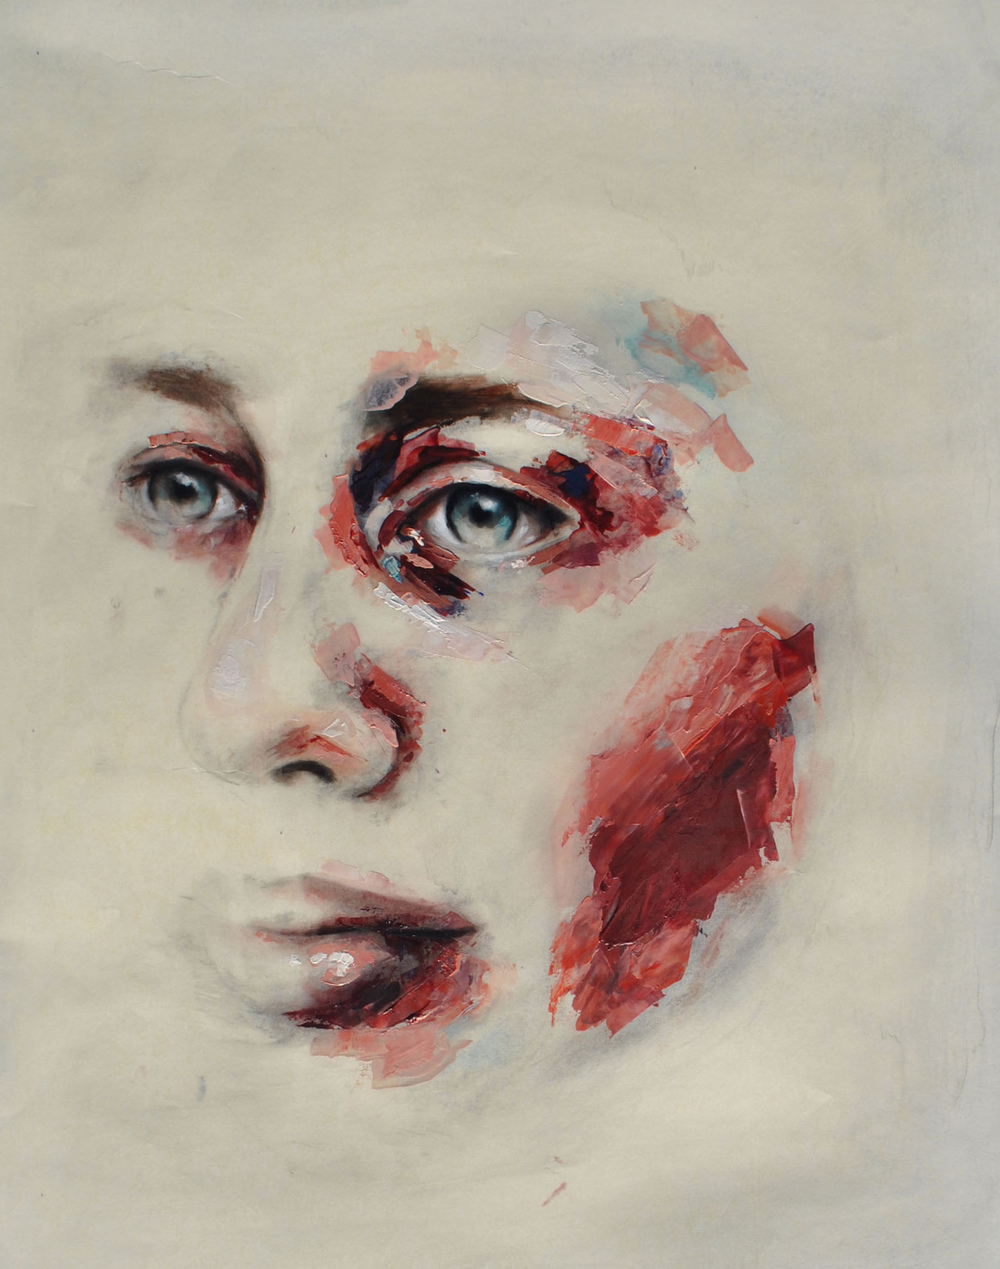 Morag Cullens - * SOLD * Isabel on paper, Oil on paper.